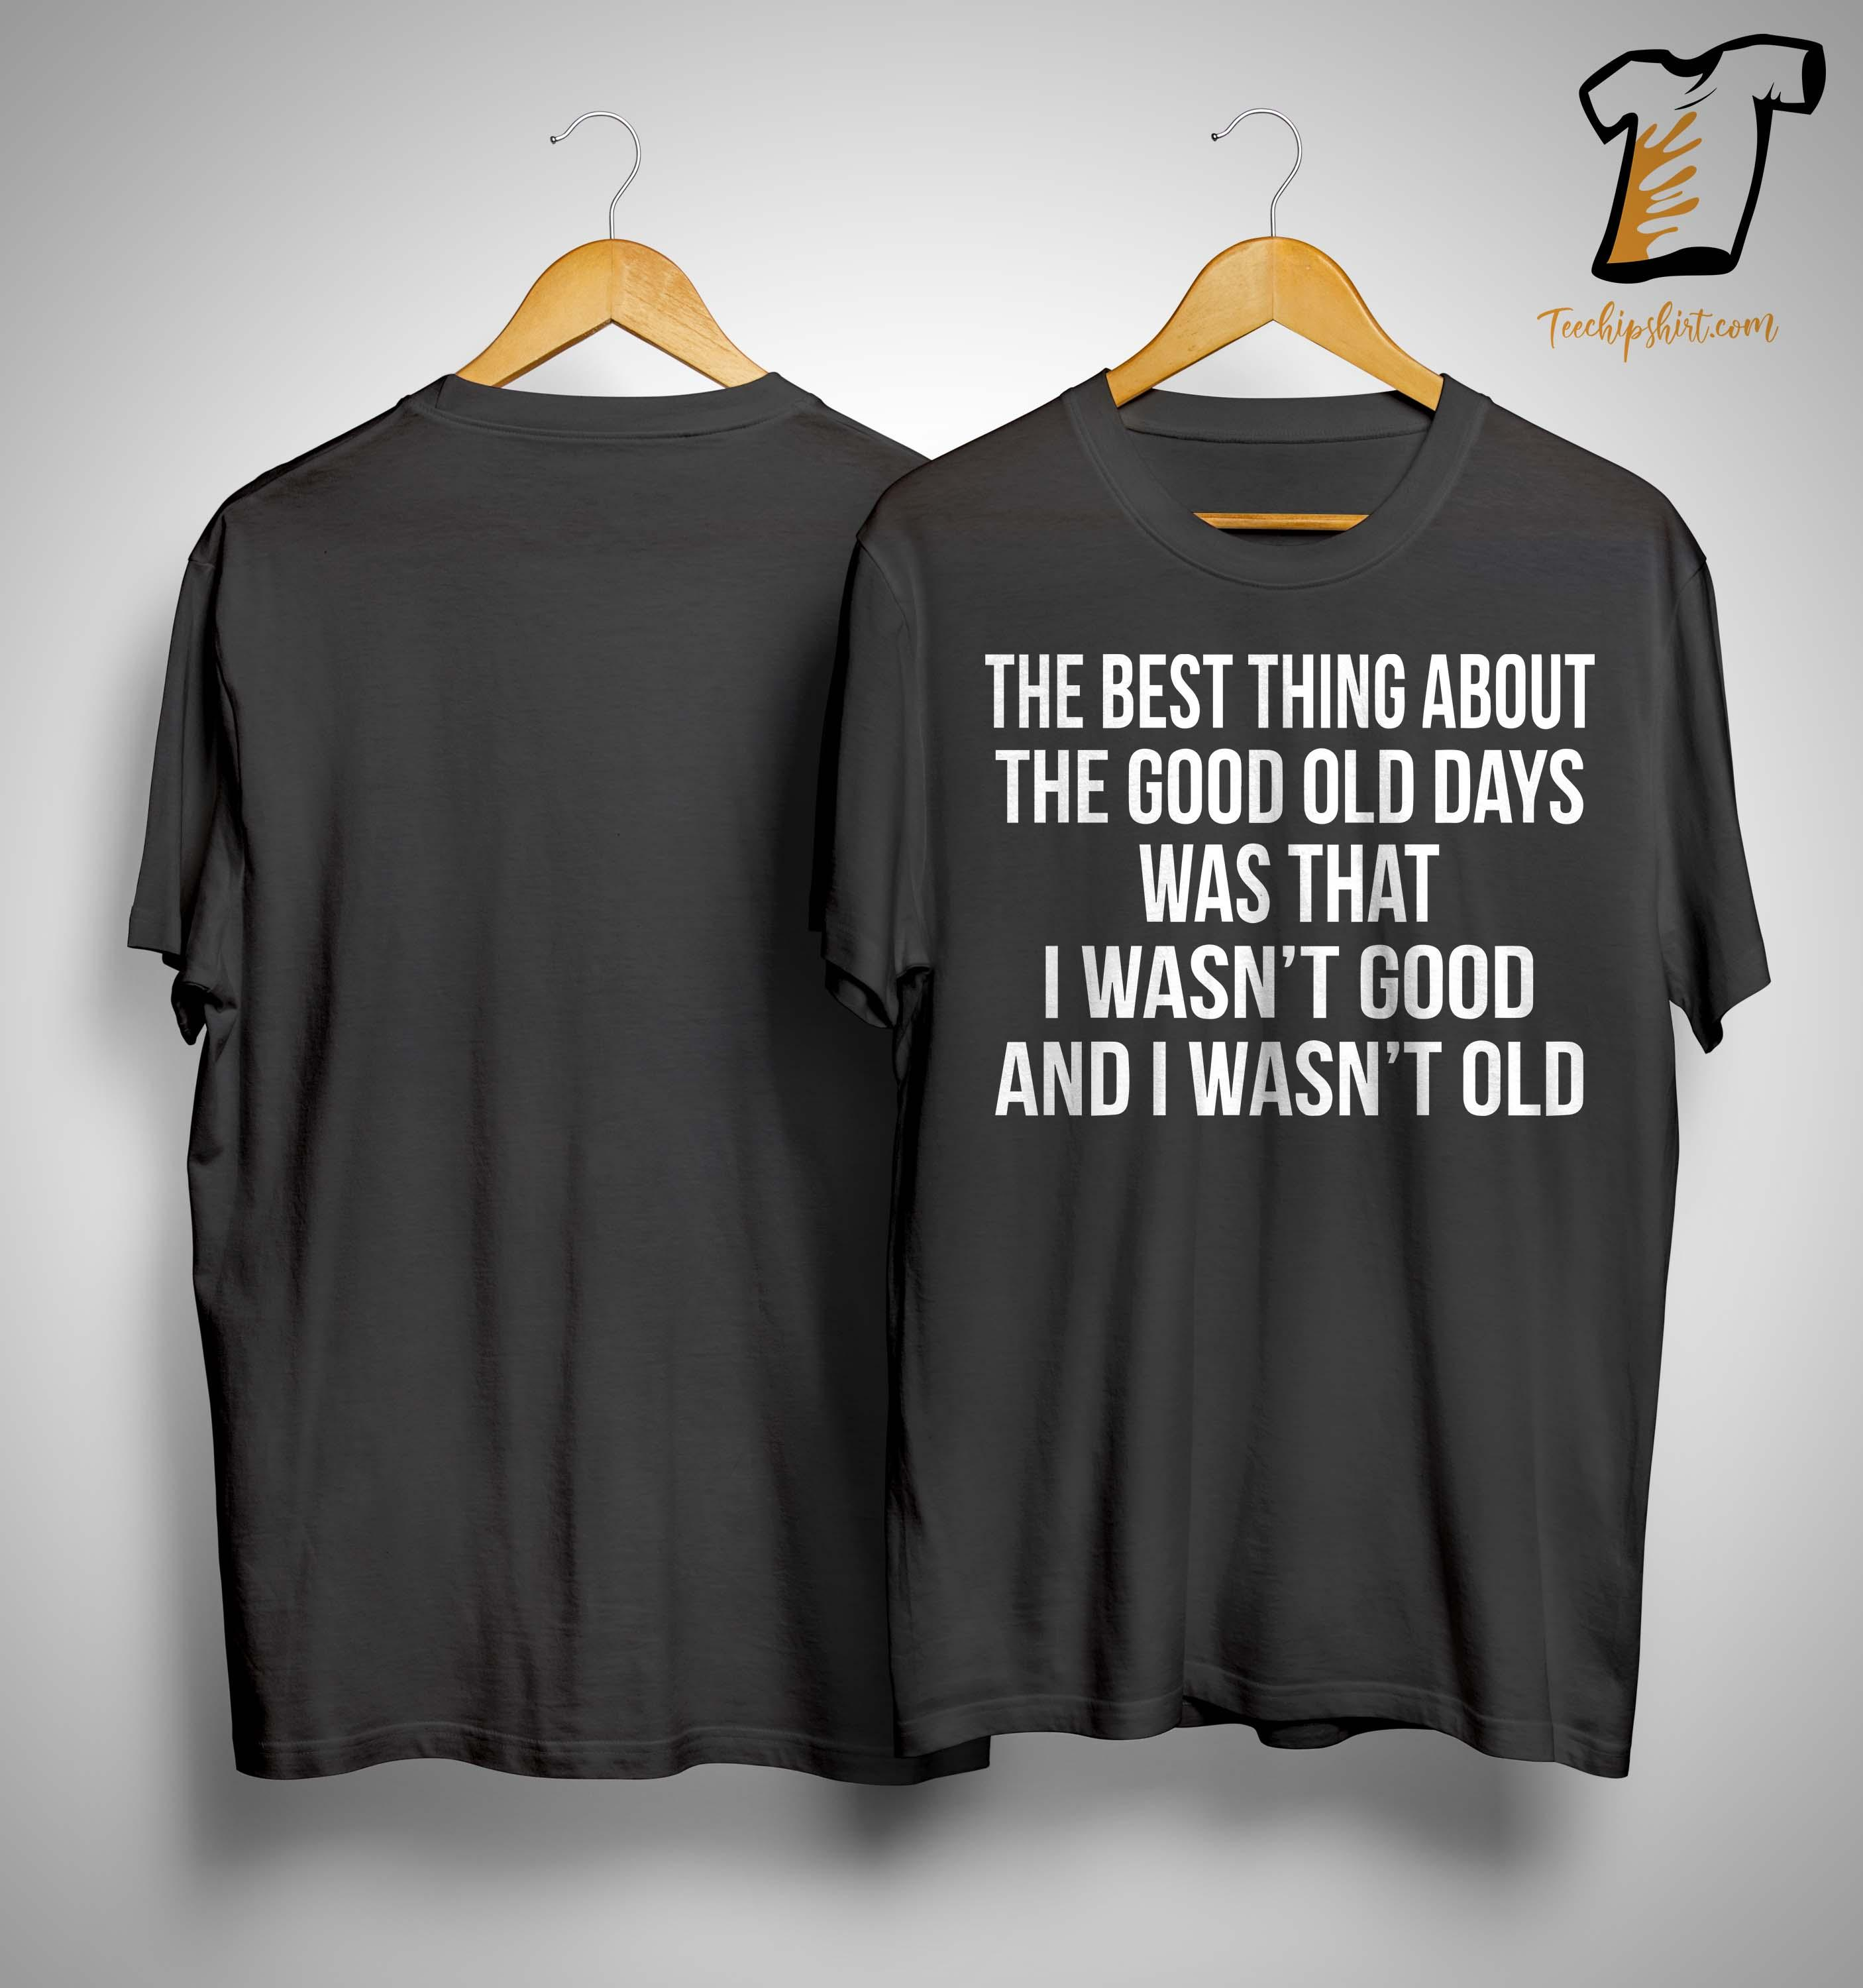 The Best Thing About The Good Old Days Was That I Wasn't Good Shirt